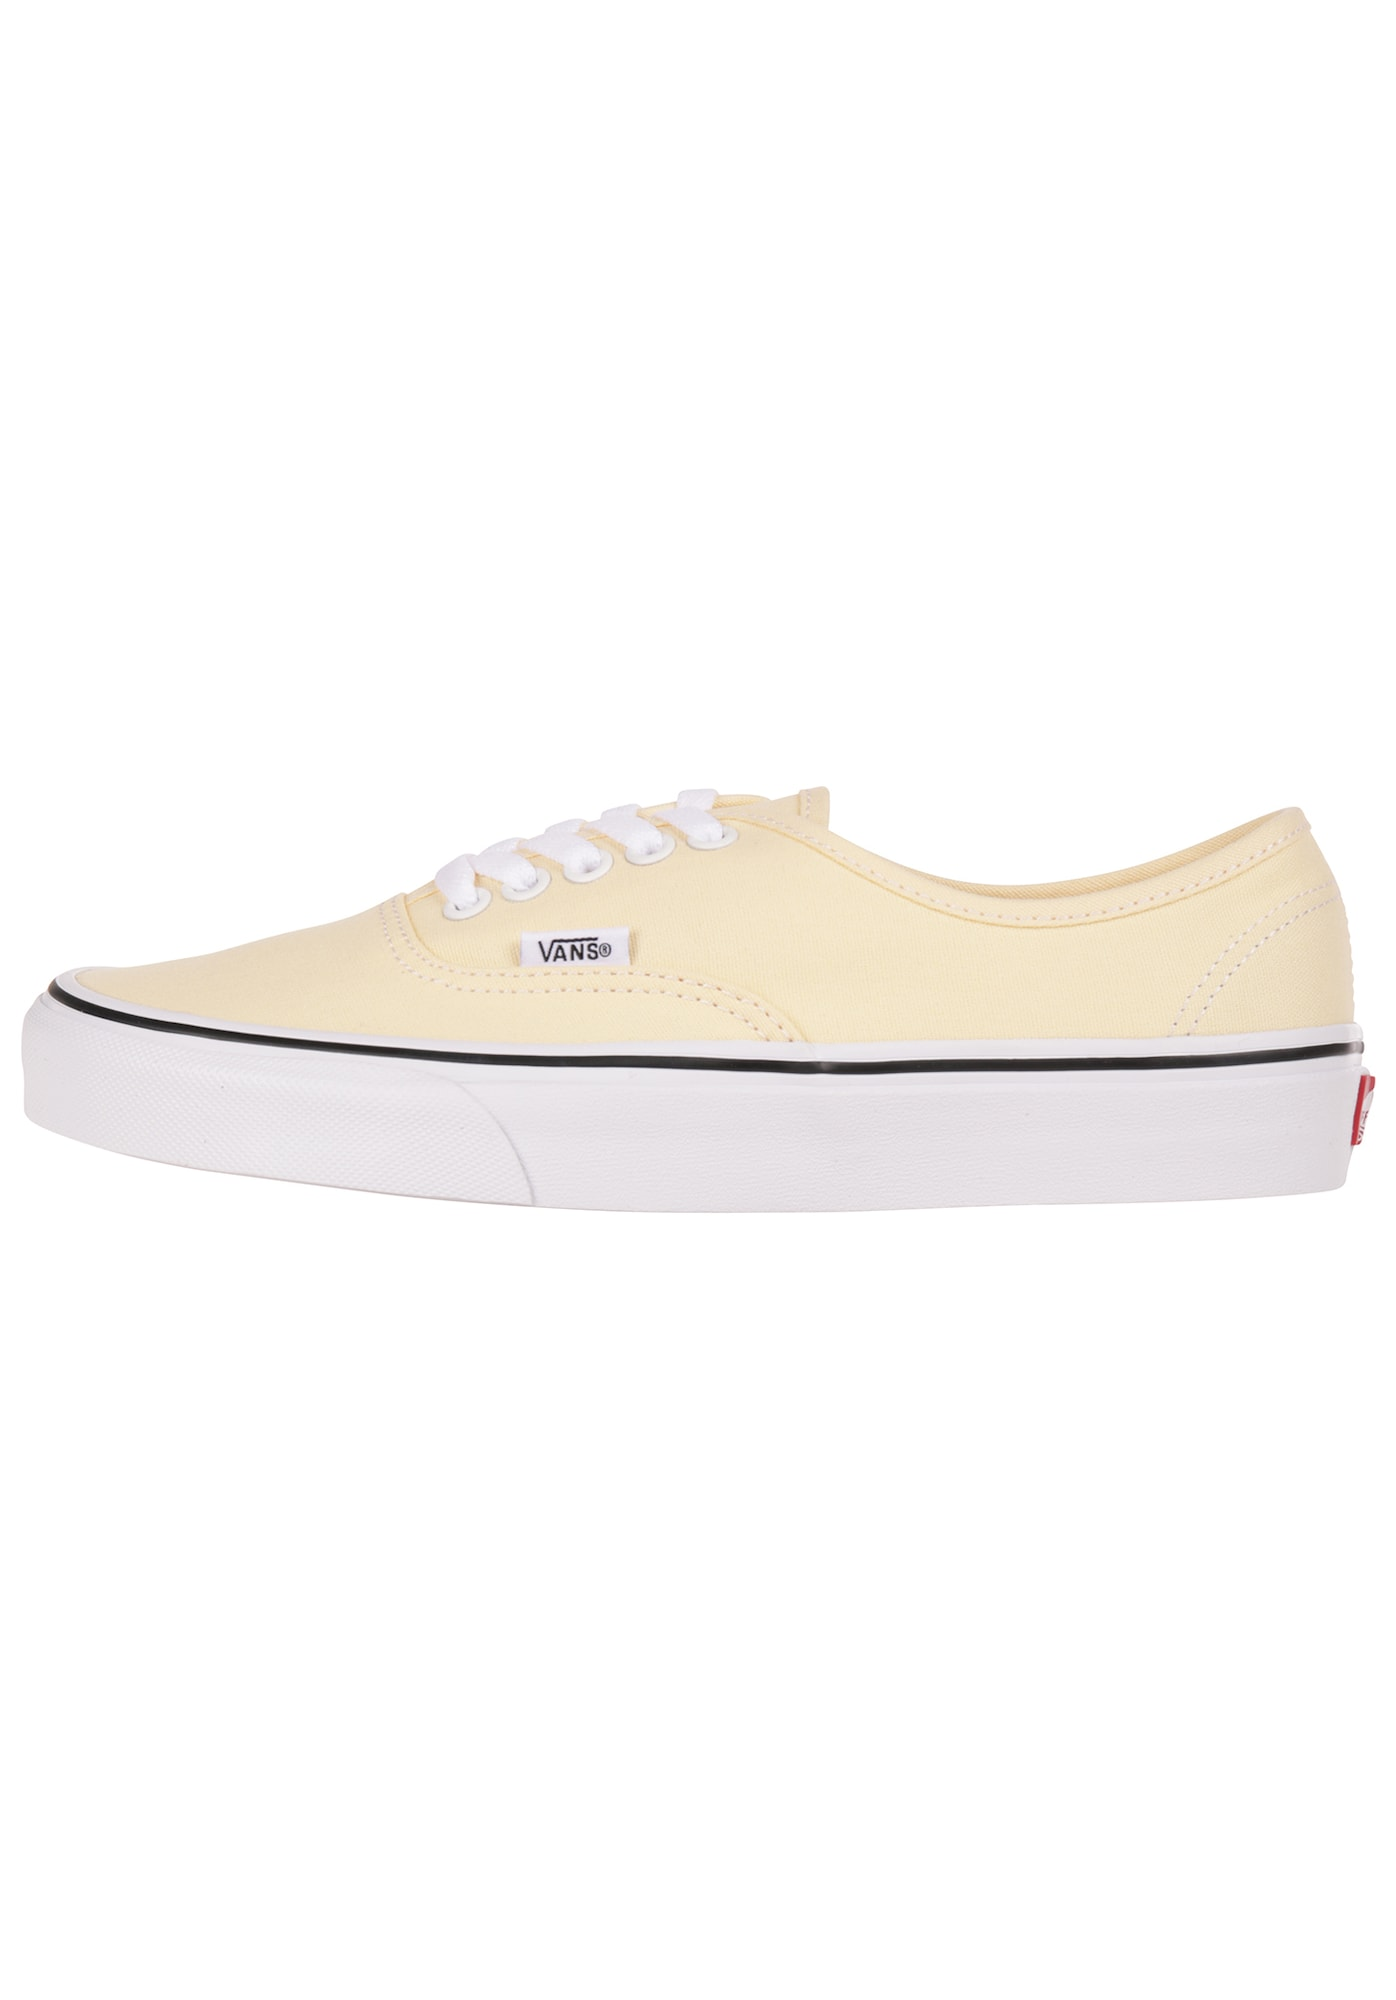 VANS, Dames Sneakers laag 'Authentic', lichtgeel